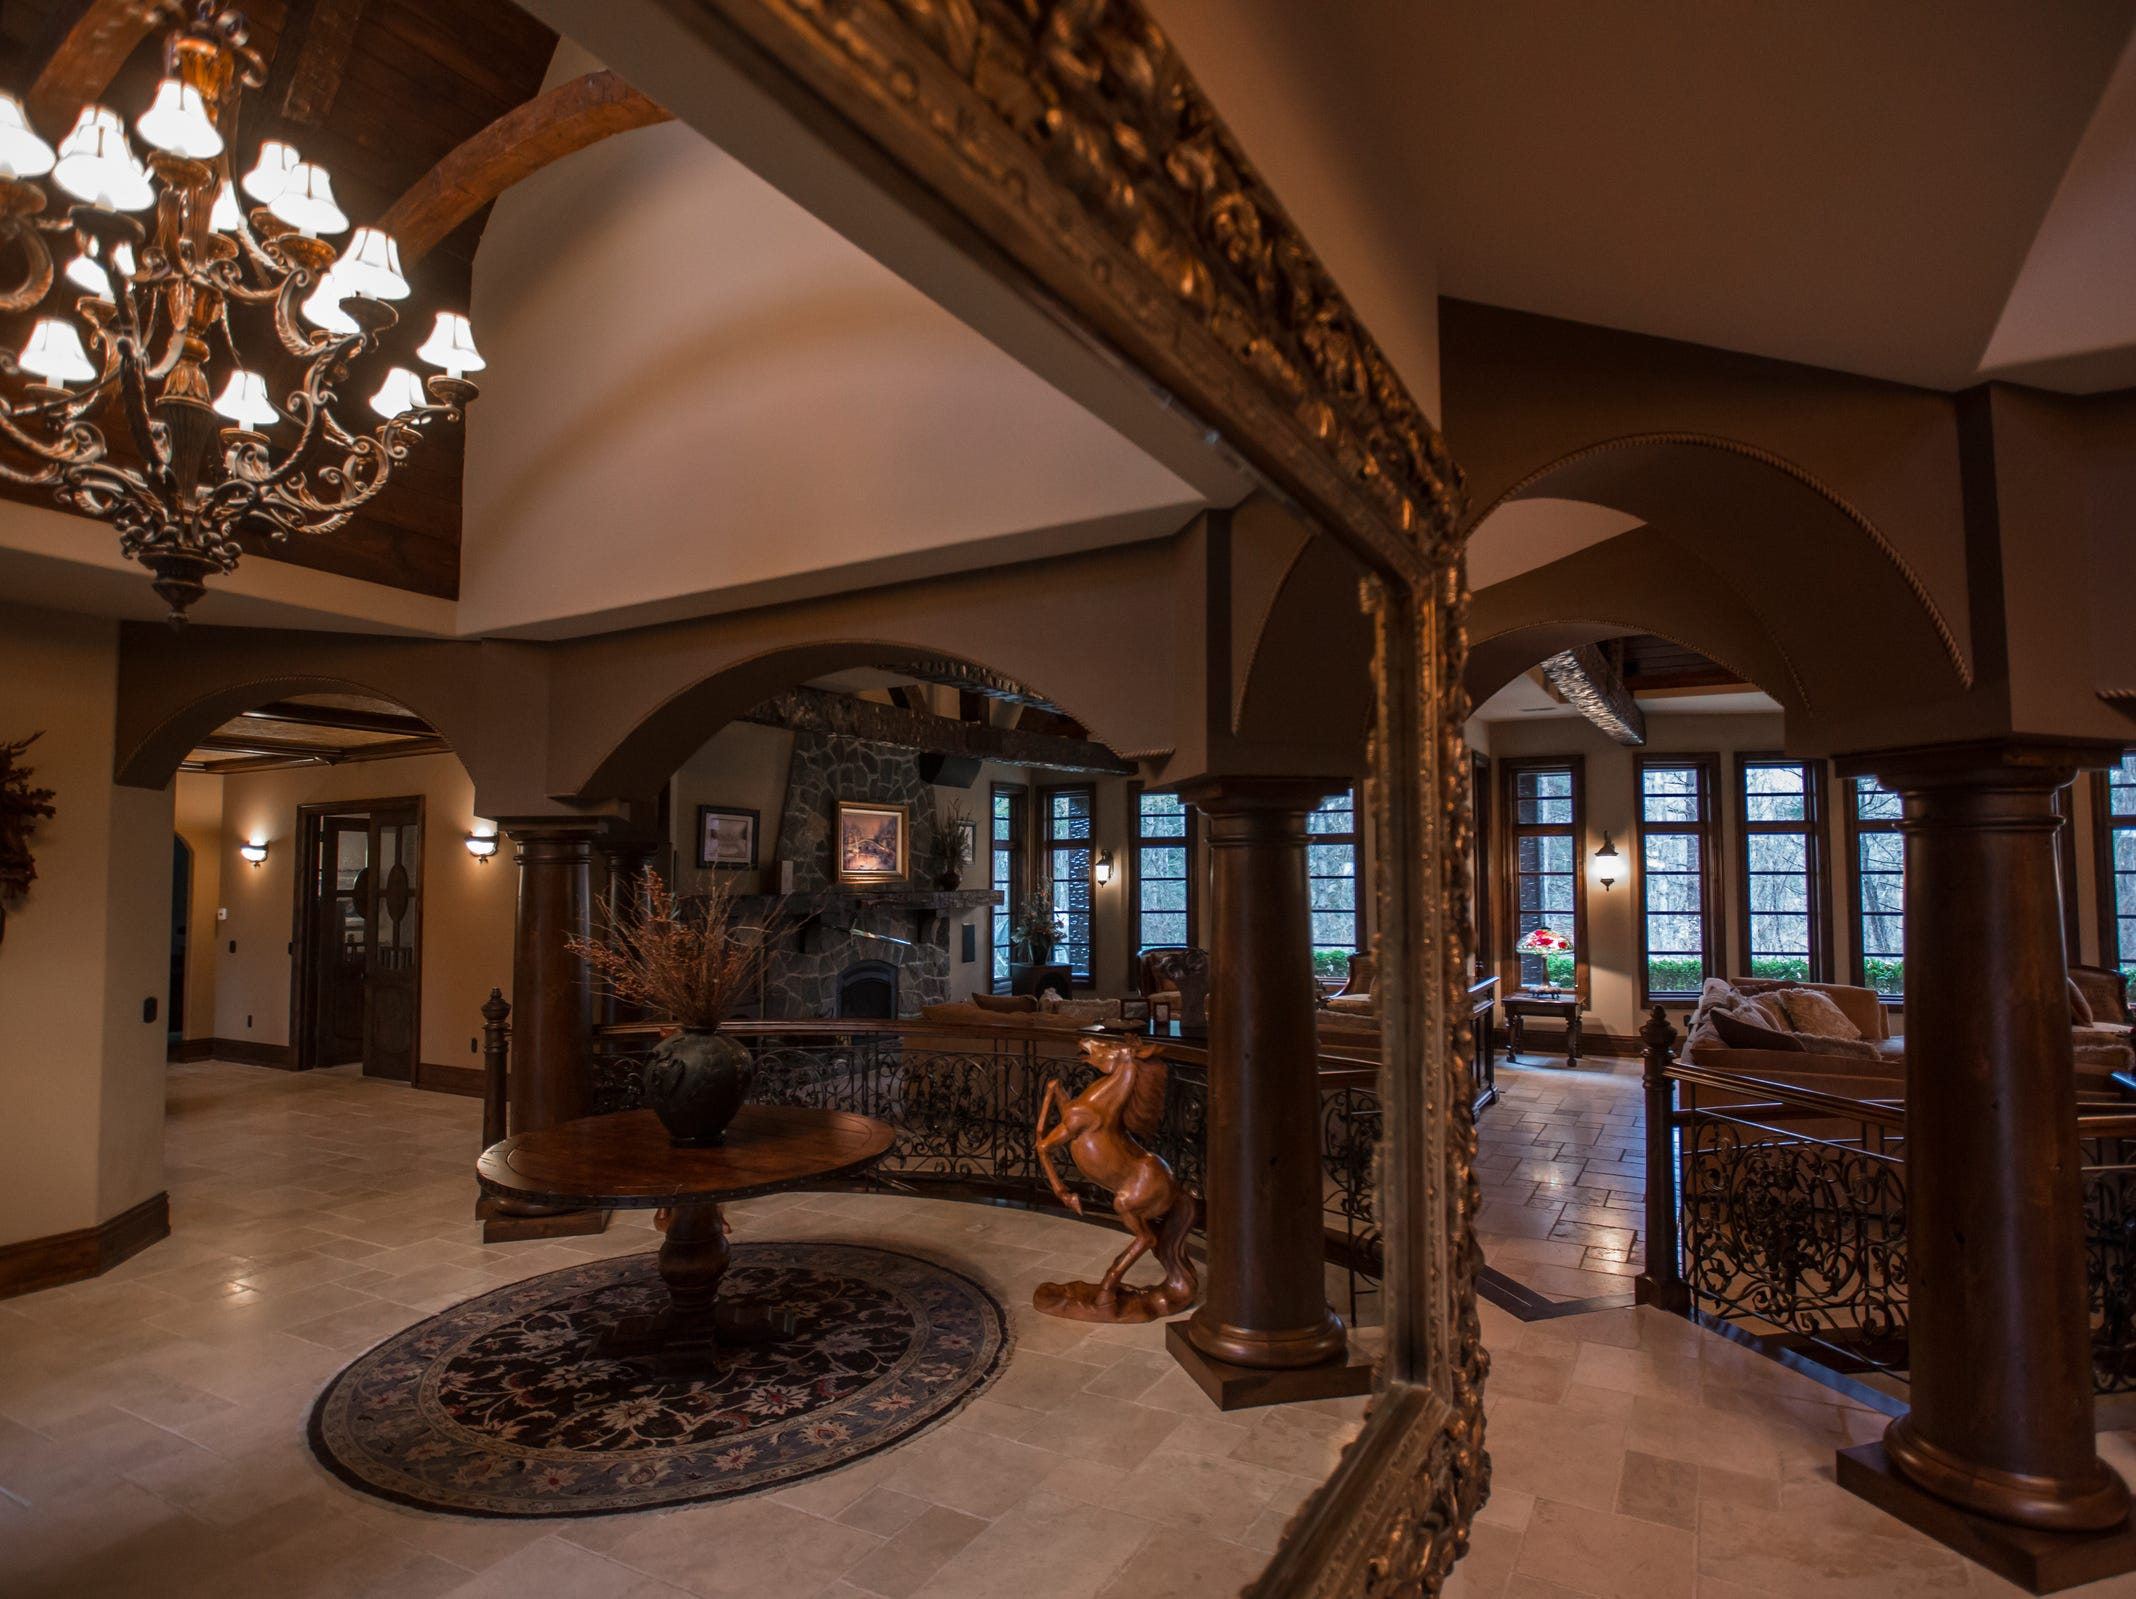 A large mirror in the foyer reflects the great room of the home envisioned after the Biltmore Estate designed by Alex Bogarts and built by an award winning builder as his own personal residence.